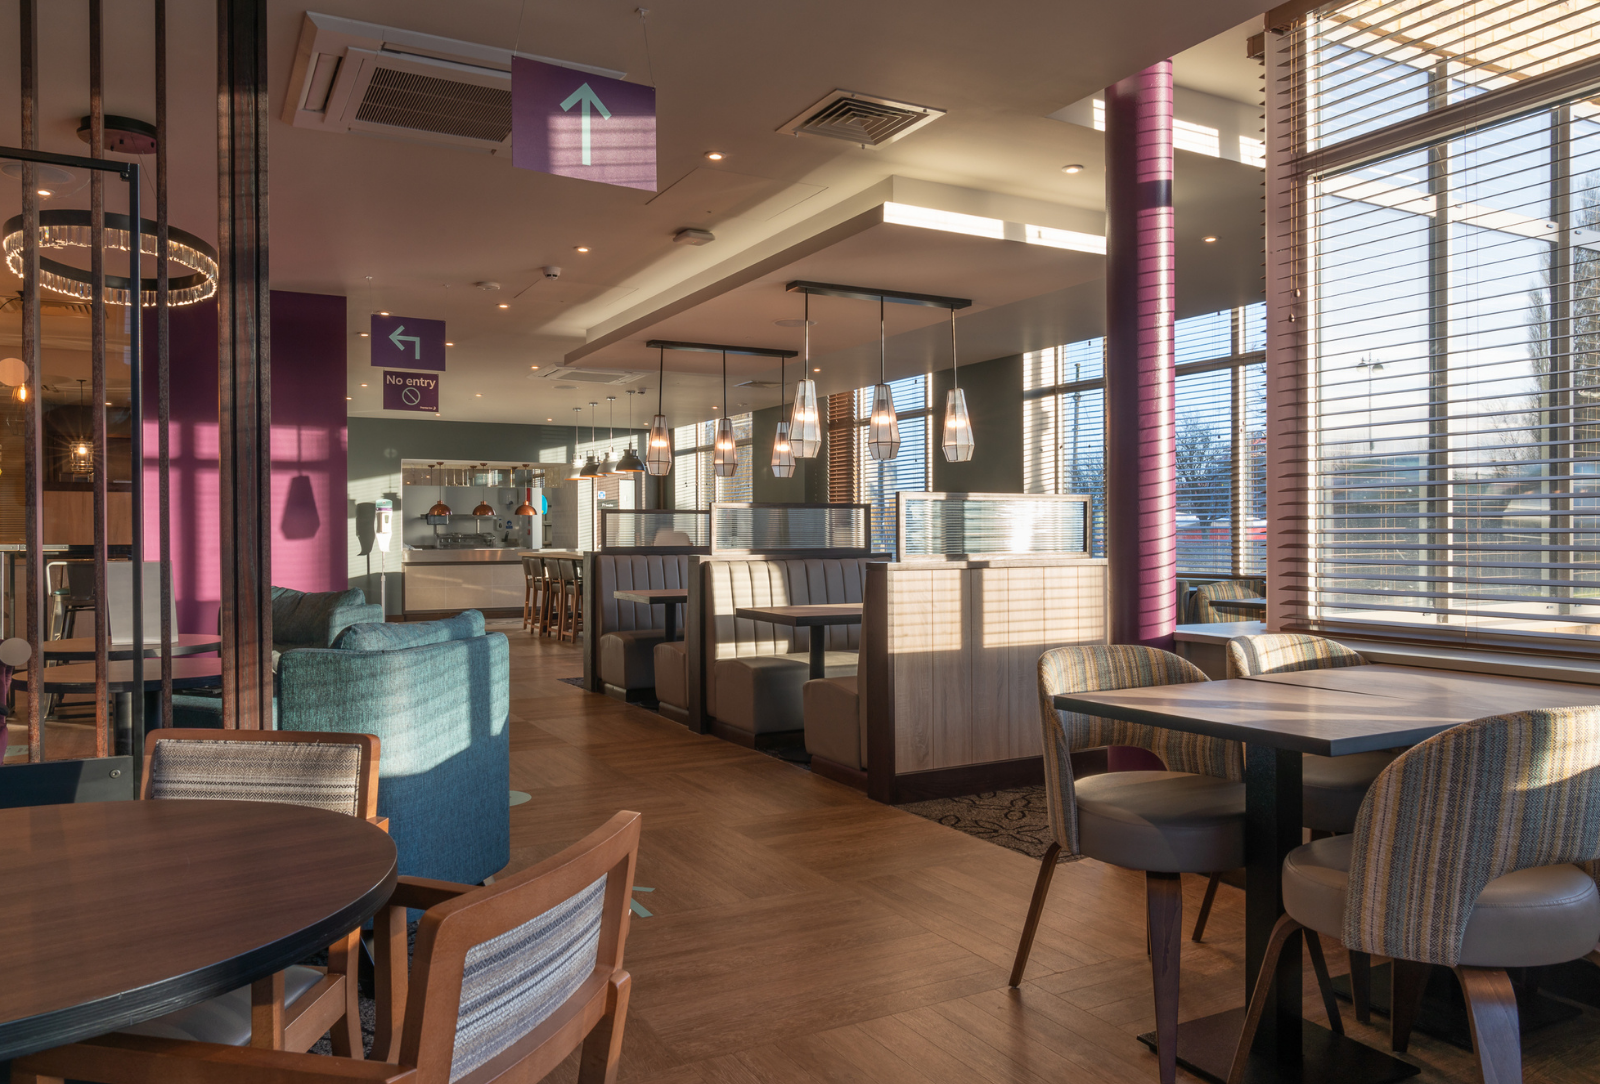 Commercial joinery at Premier Inn dining area